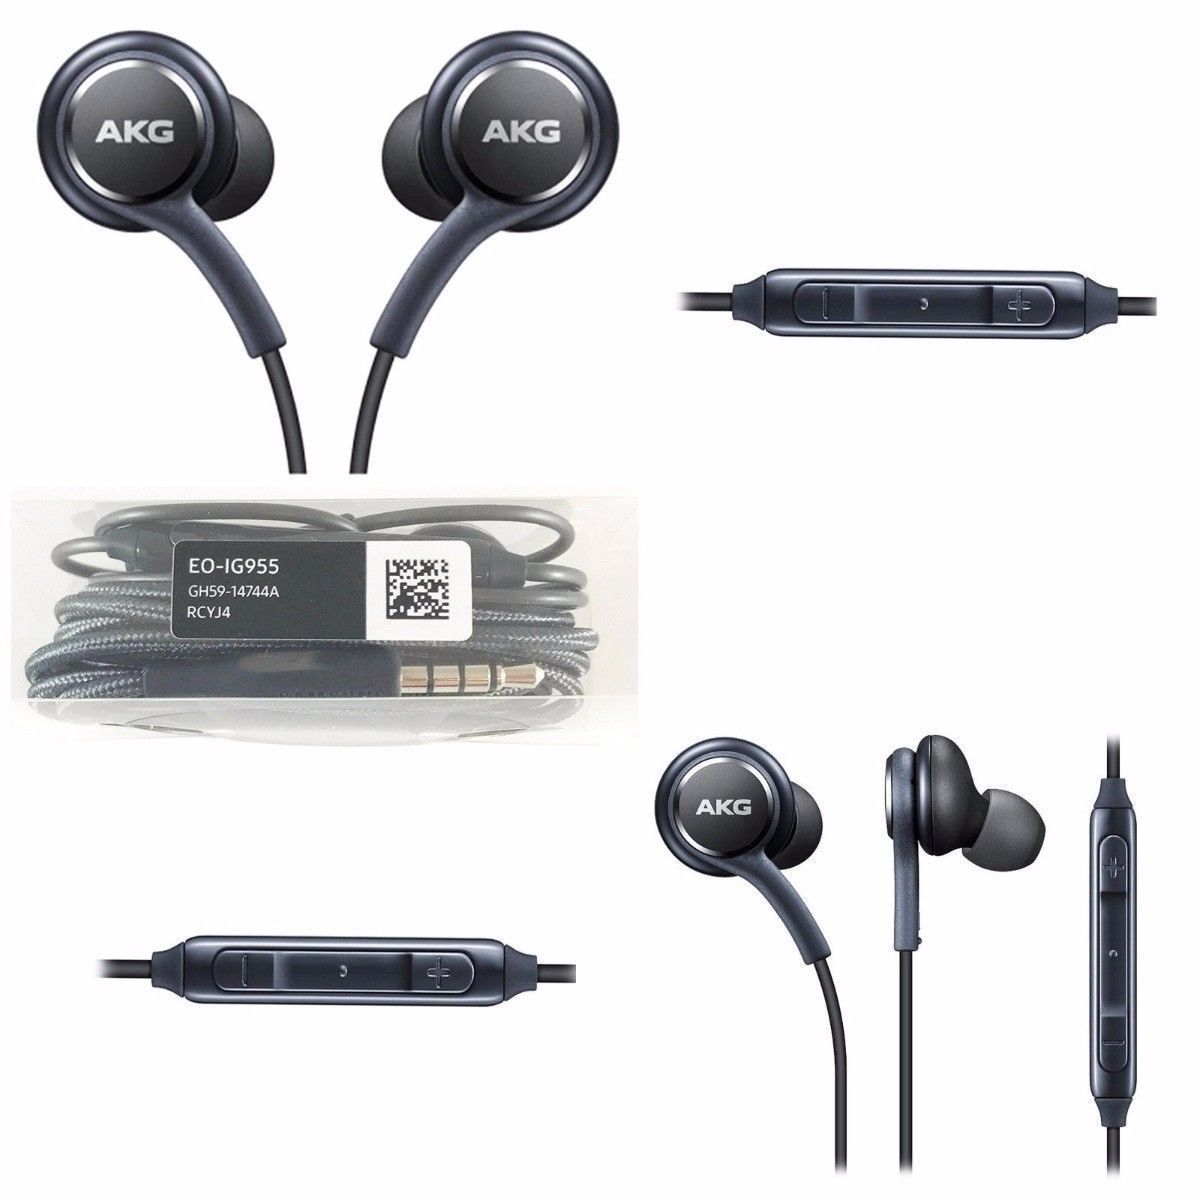 Oem Samsung Akg Earphones Headphones Headset Ear Buds For S9 S8 S8 Note 8 9 J7 Ebay